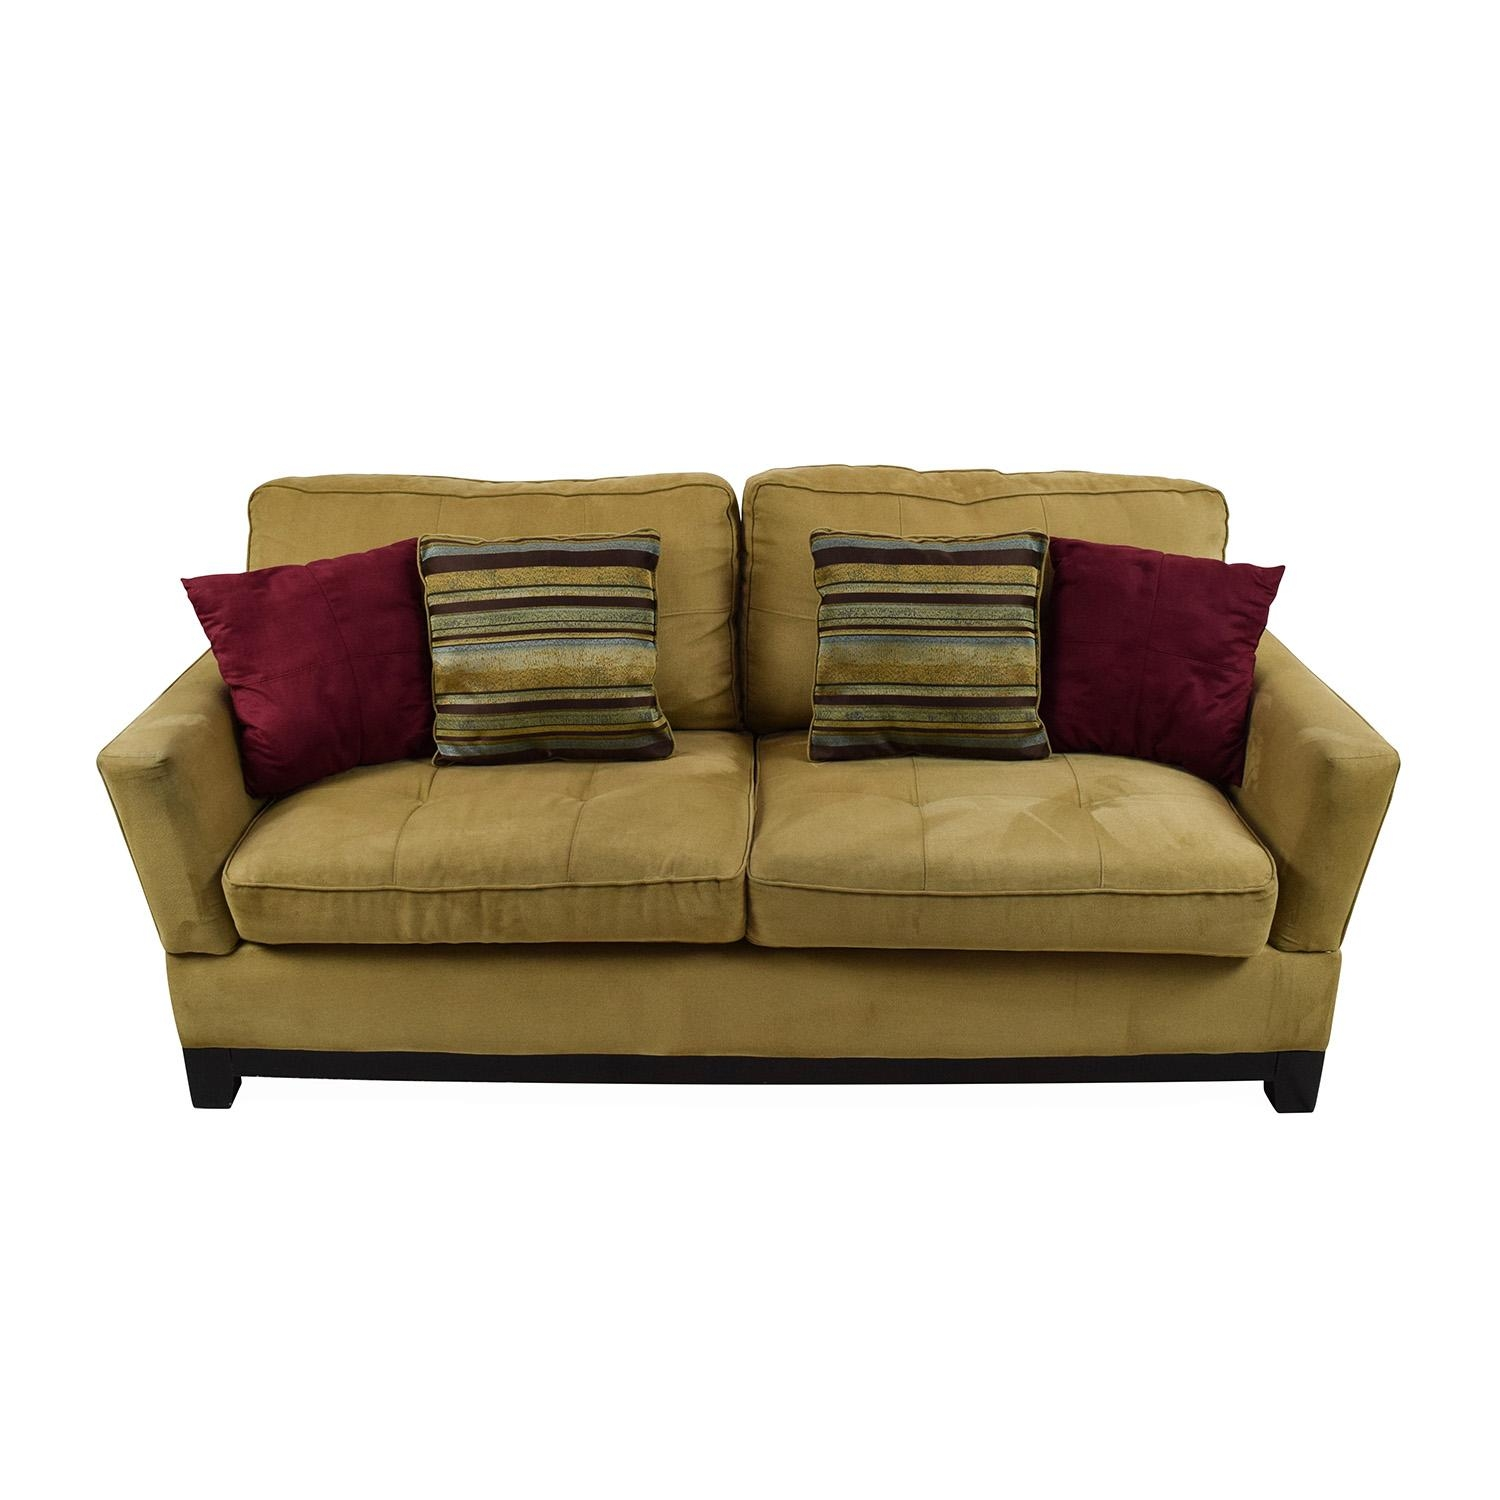 78% Off – Jennifer Convertibles Jennifer Convertibles Tan Sofa / Sofas With Regard To Jennifer Sofas (Image 8 of 20)